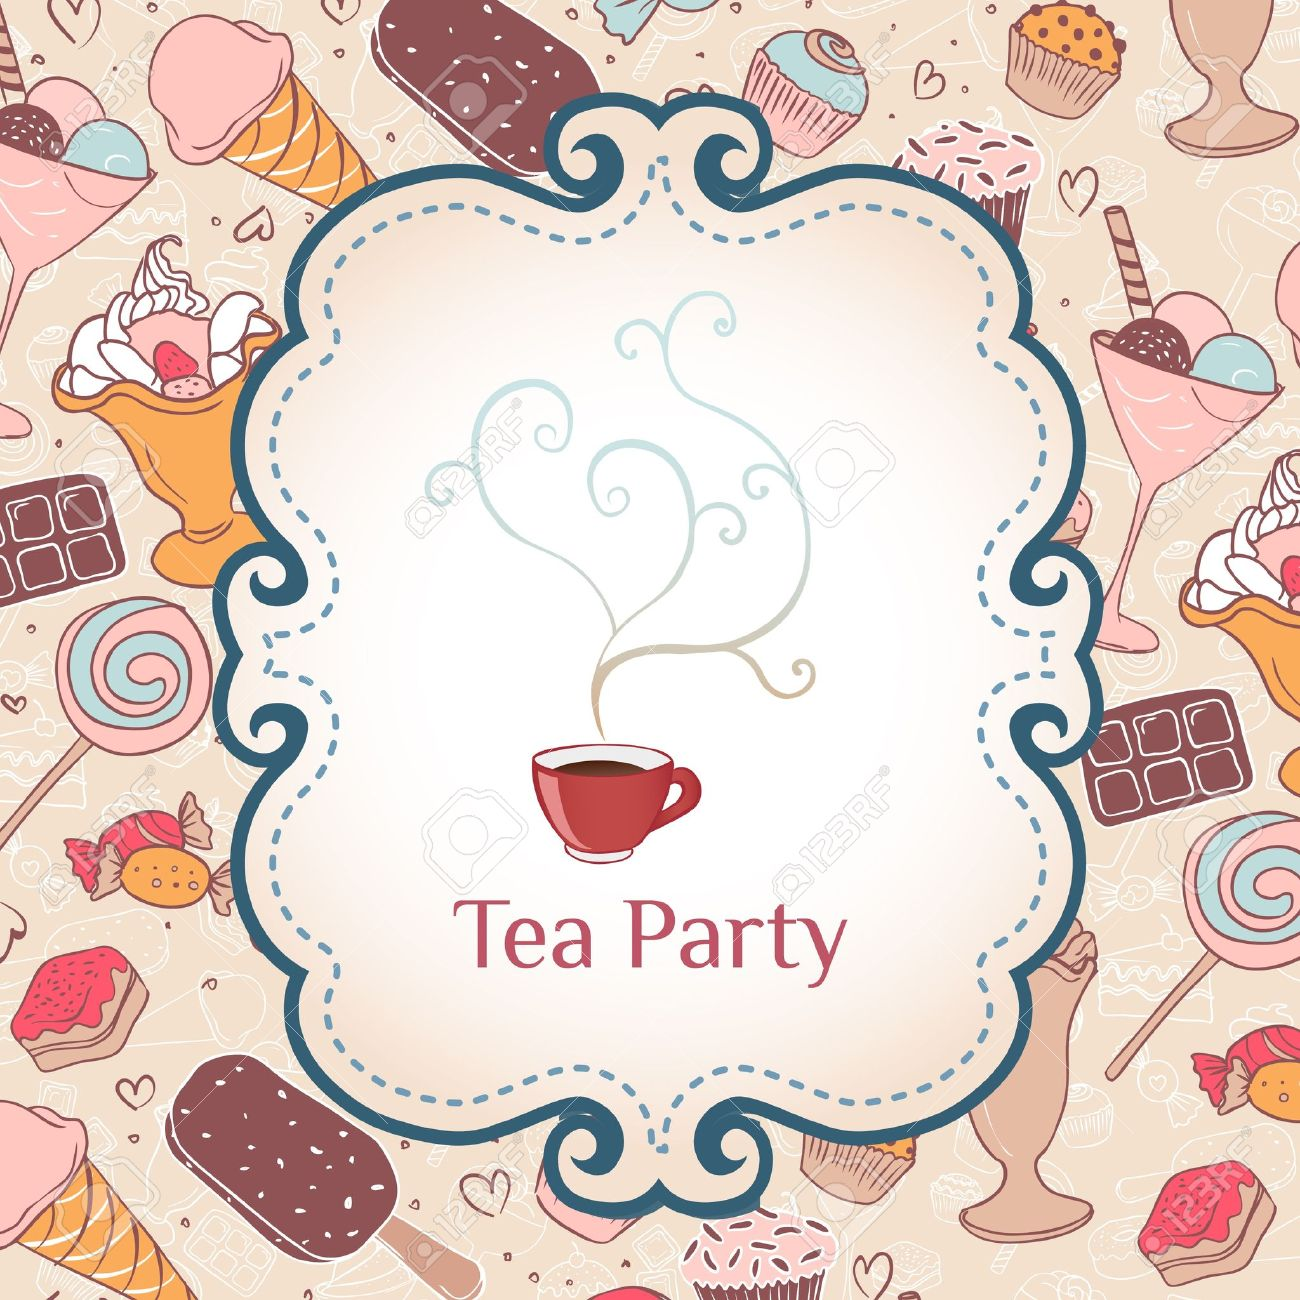 tea party invitation vintage style frame vector illustration